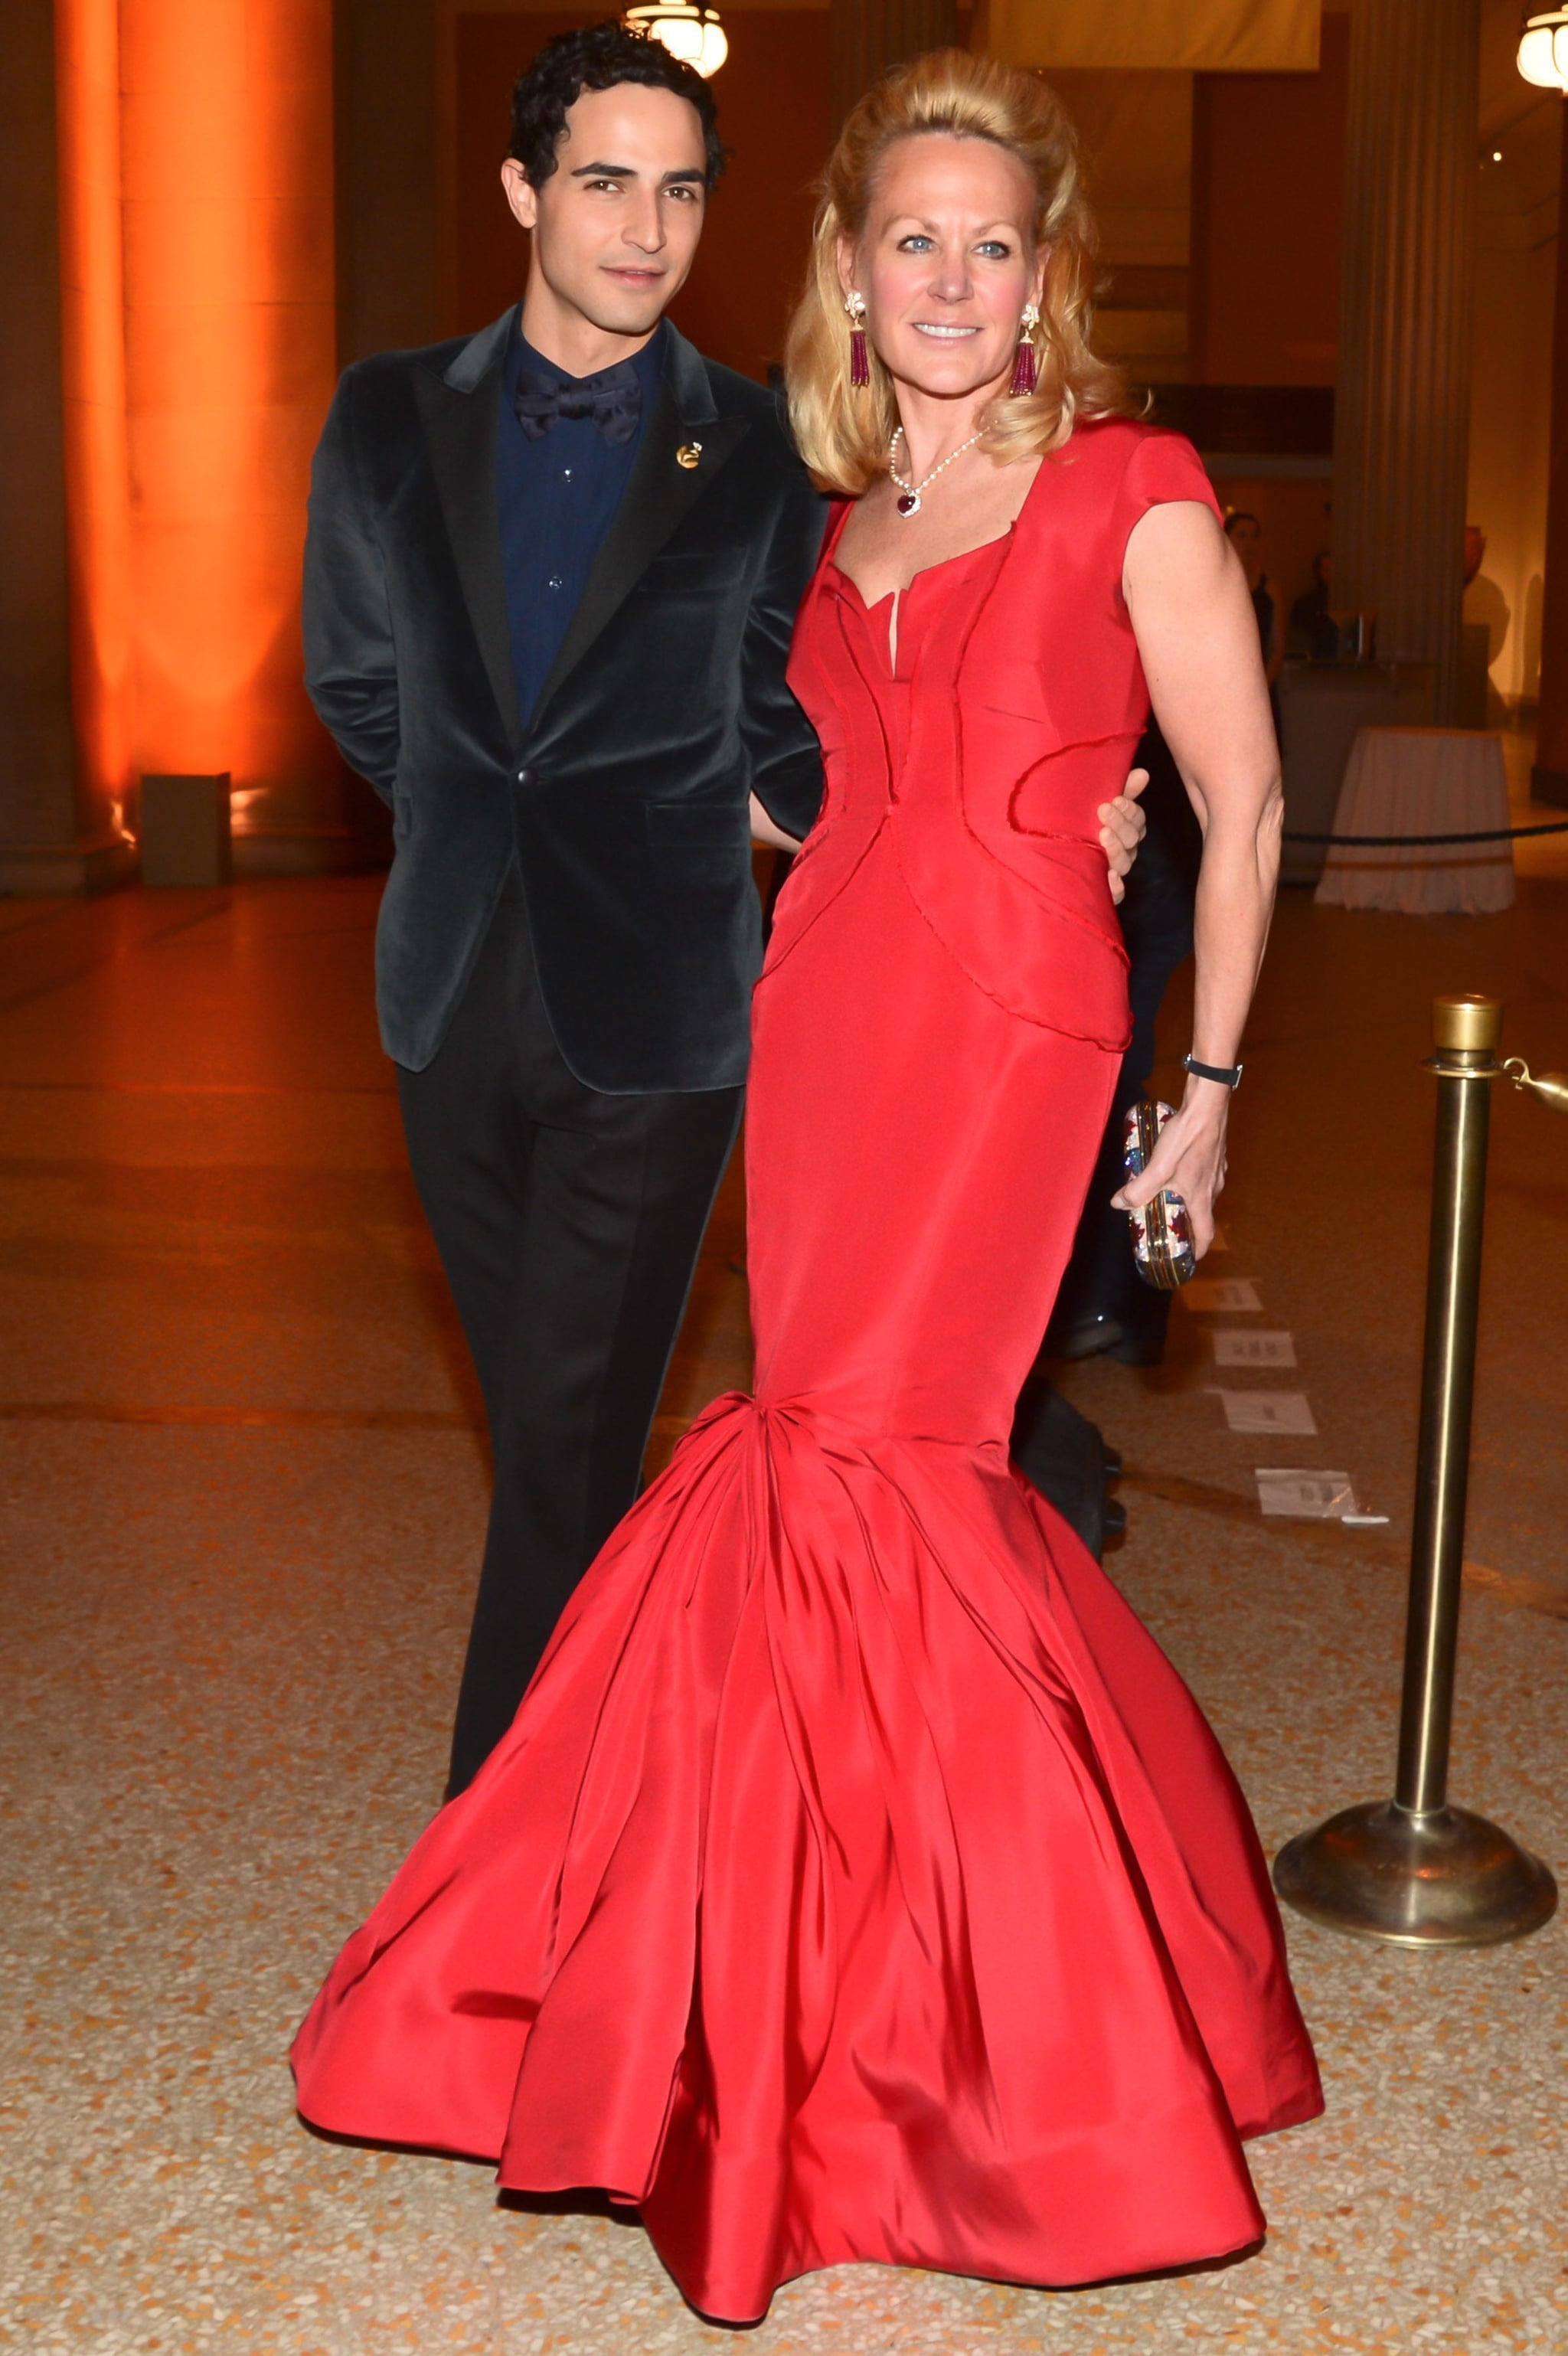 Zac Posen and Muffie Potter Aston at The Society of MSKCC and Harry Winston's sixth annual Spring Ball in New York. Source: Joe Schildhorn/BFAnyc.com